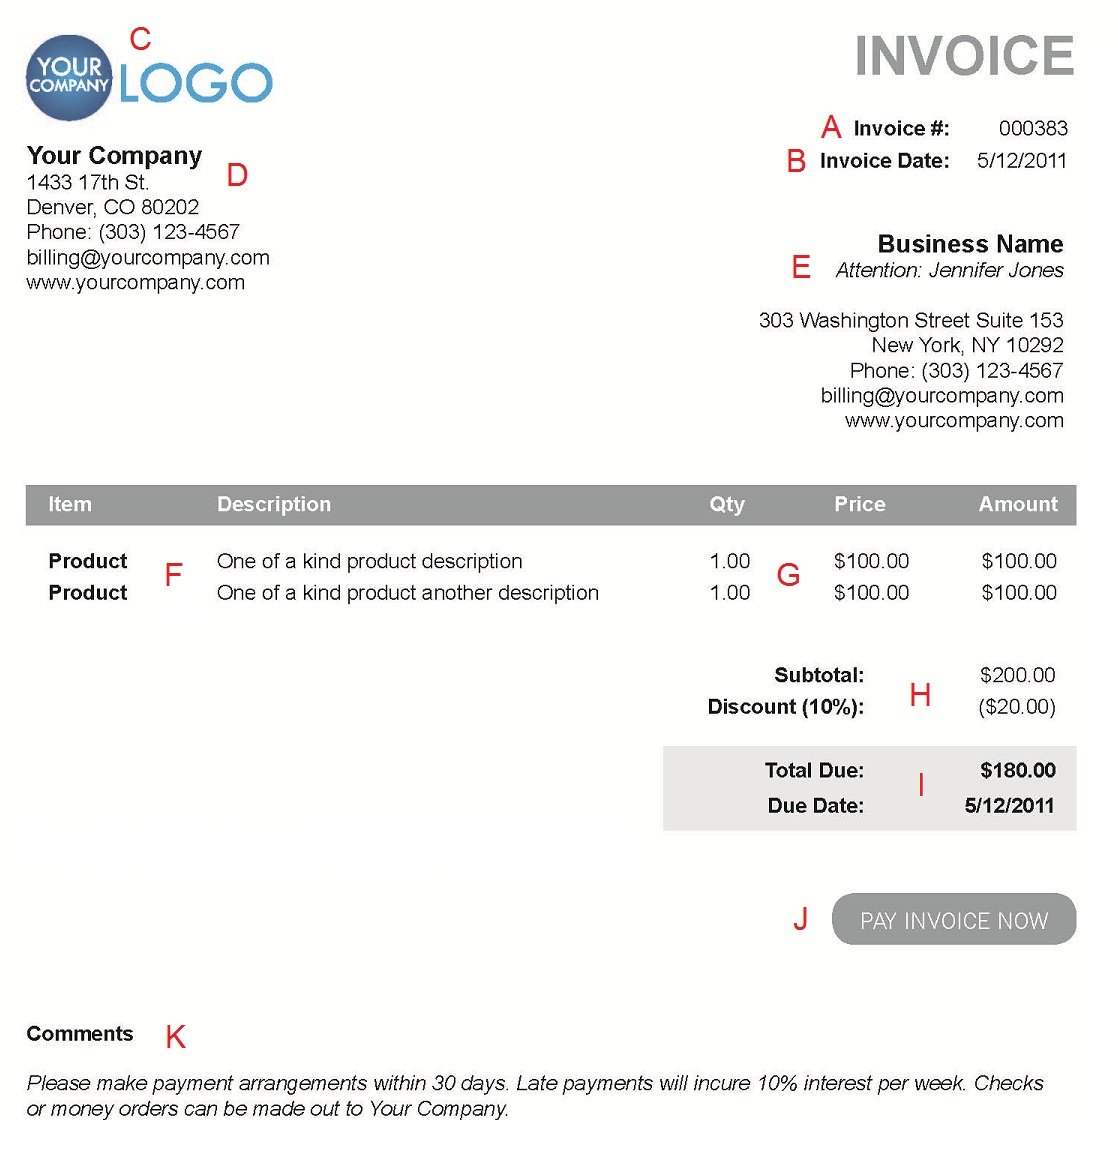 Songrecordsus  Sweet The  Different Sections Of An Electronic Payment Invoice With Heavenly A  With Agreeable Free Invoice Software Download Also My Invoices In Addition Invoices For Free And Invoice Blank As Well As Mechanics Invoice Template Additionally Sending Invoice Email From Paysimplecom With Songrecordsus  Heavenly The  Different Sections Of An Electronic Payment Invoice With Agreeable A  And Sweet Free Invoice Software Download Also My Invoices In Addition Invoices For Free From Paysimplecom